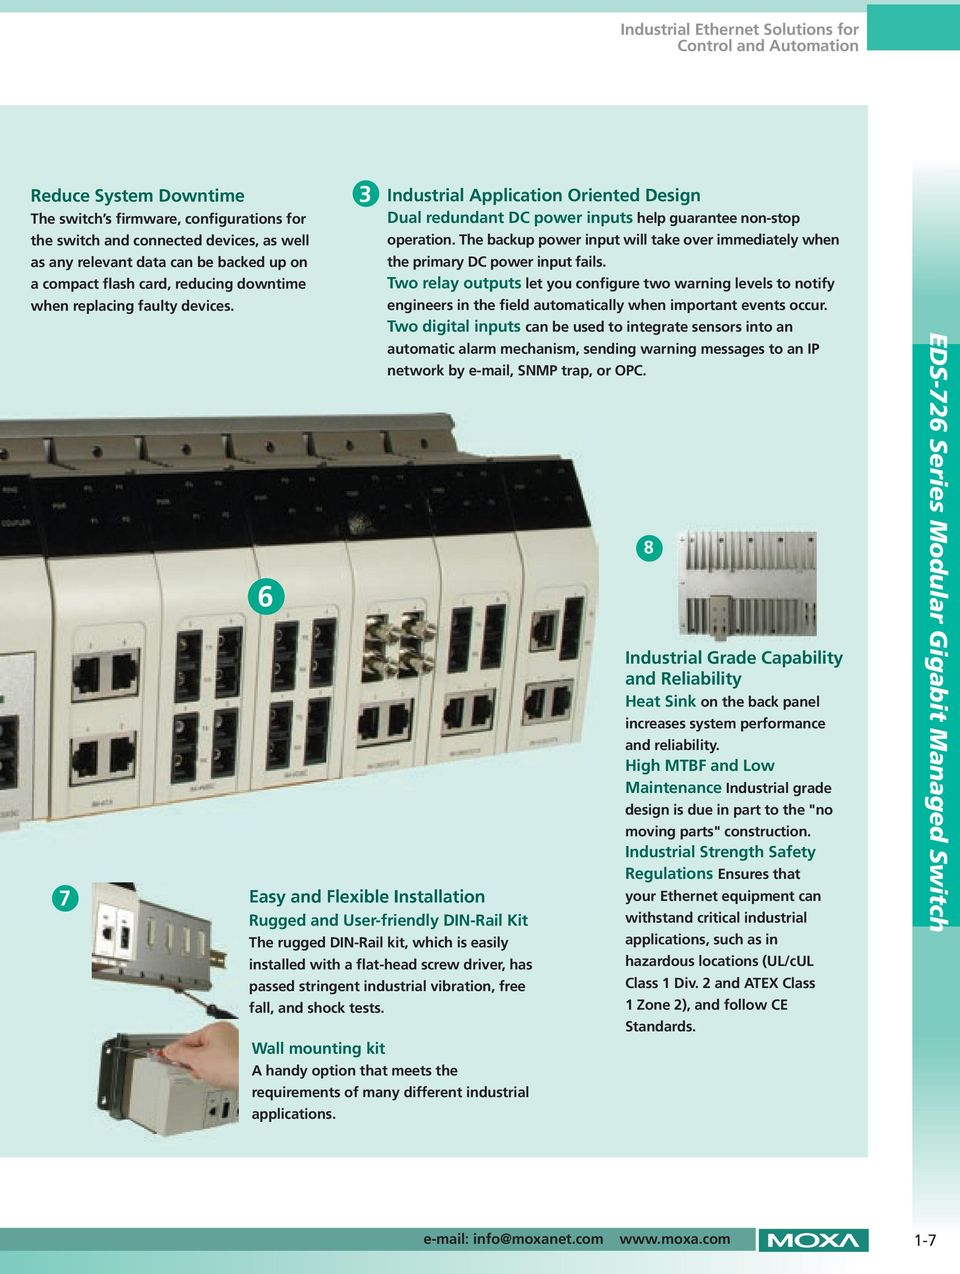 7 6 Easy and Flexible Installation Rugged and User-friendly DIN-Rail Kit The rugged DIN-Rail kit, which is easily installed with a flat-head screw driver, has passed stringent industrial vibration,